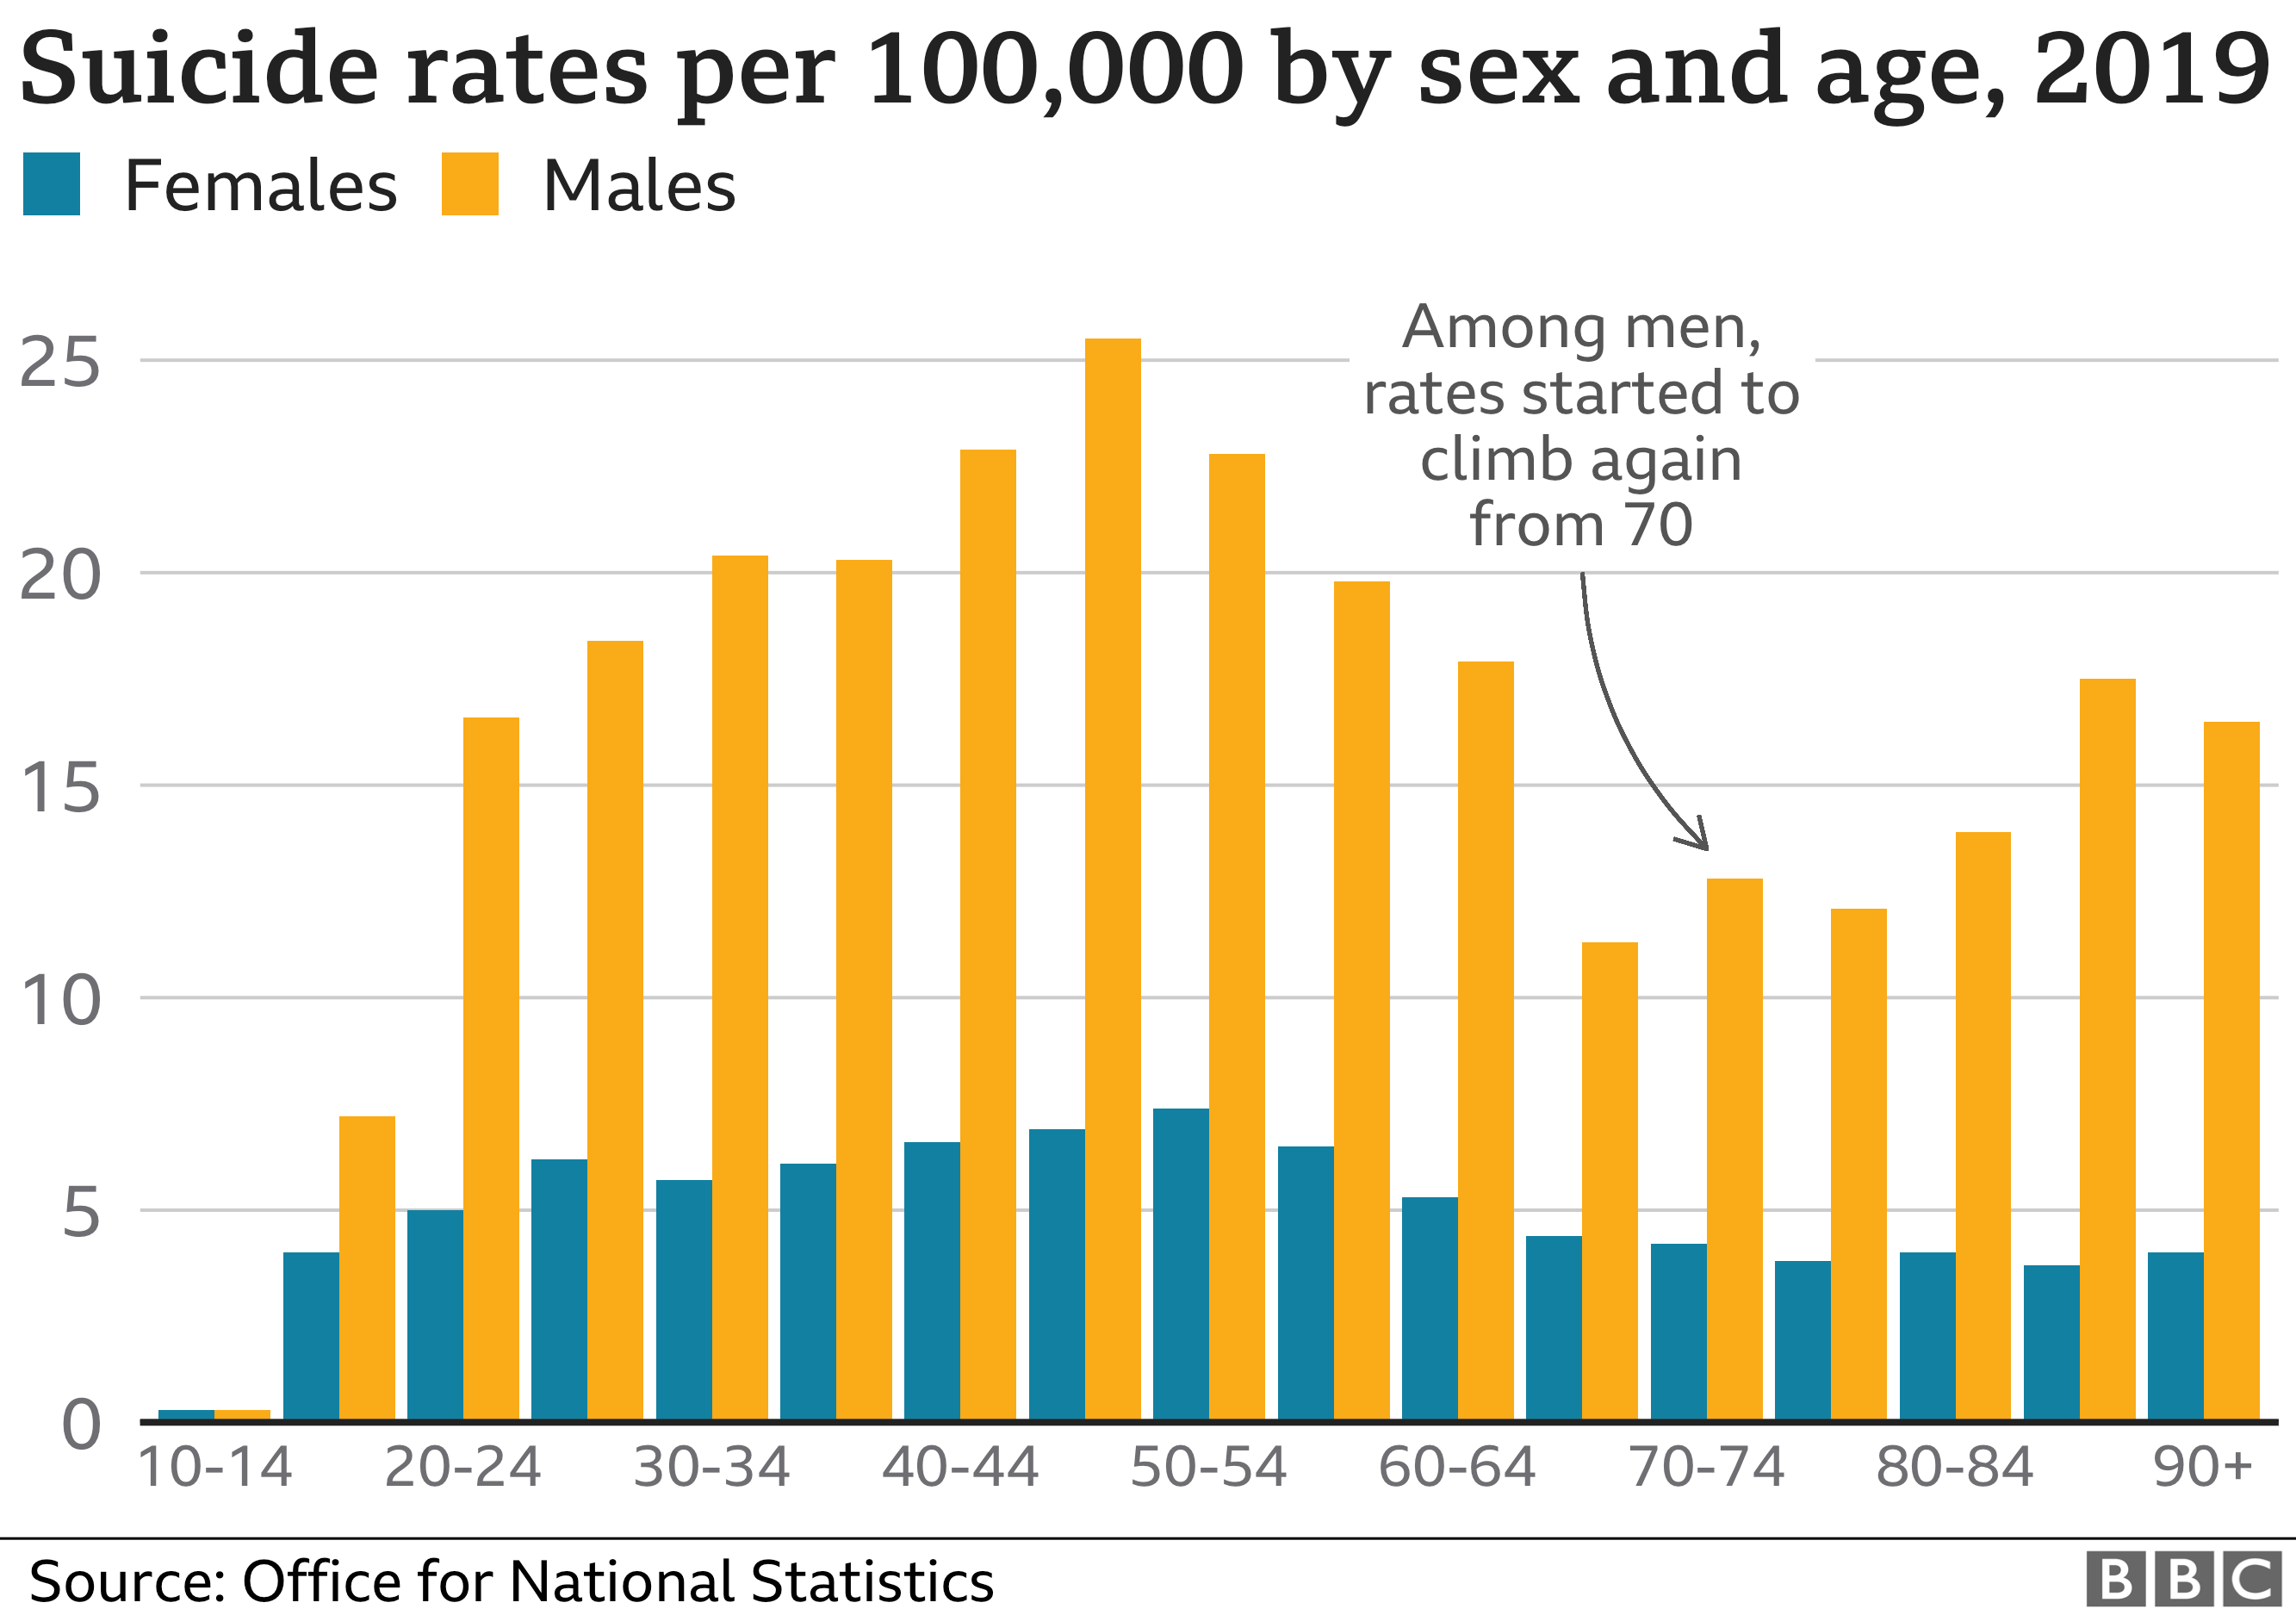 Graphic showing suicide rates for men and women in 2019